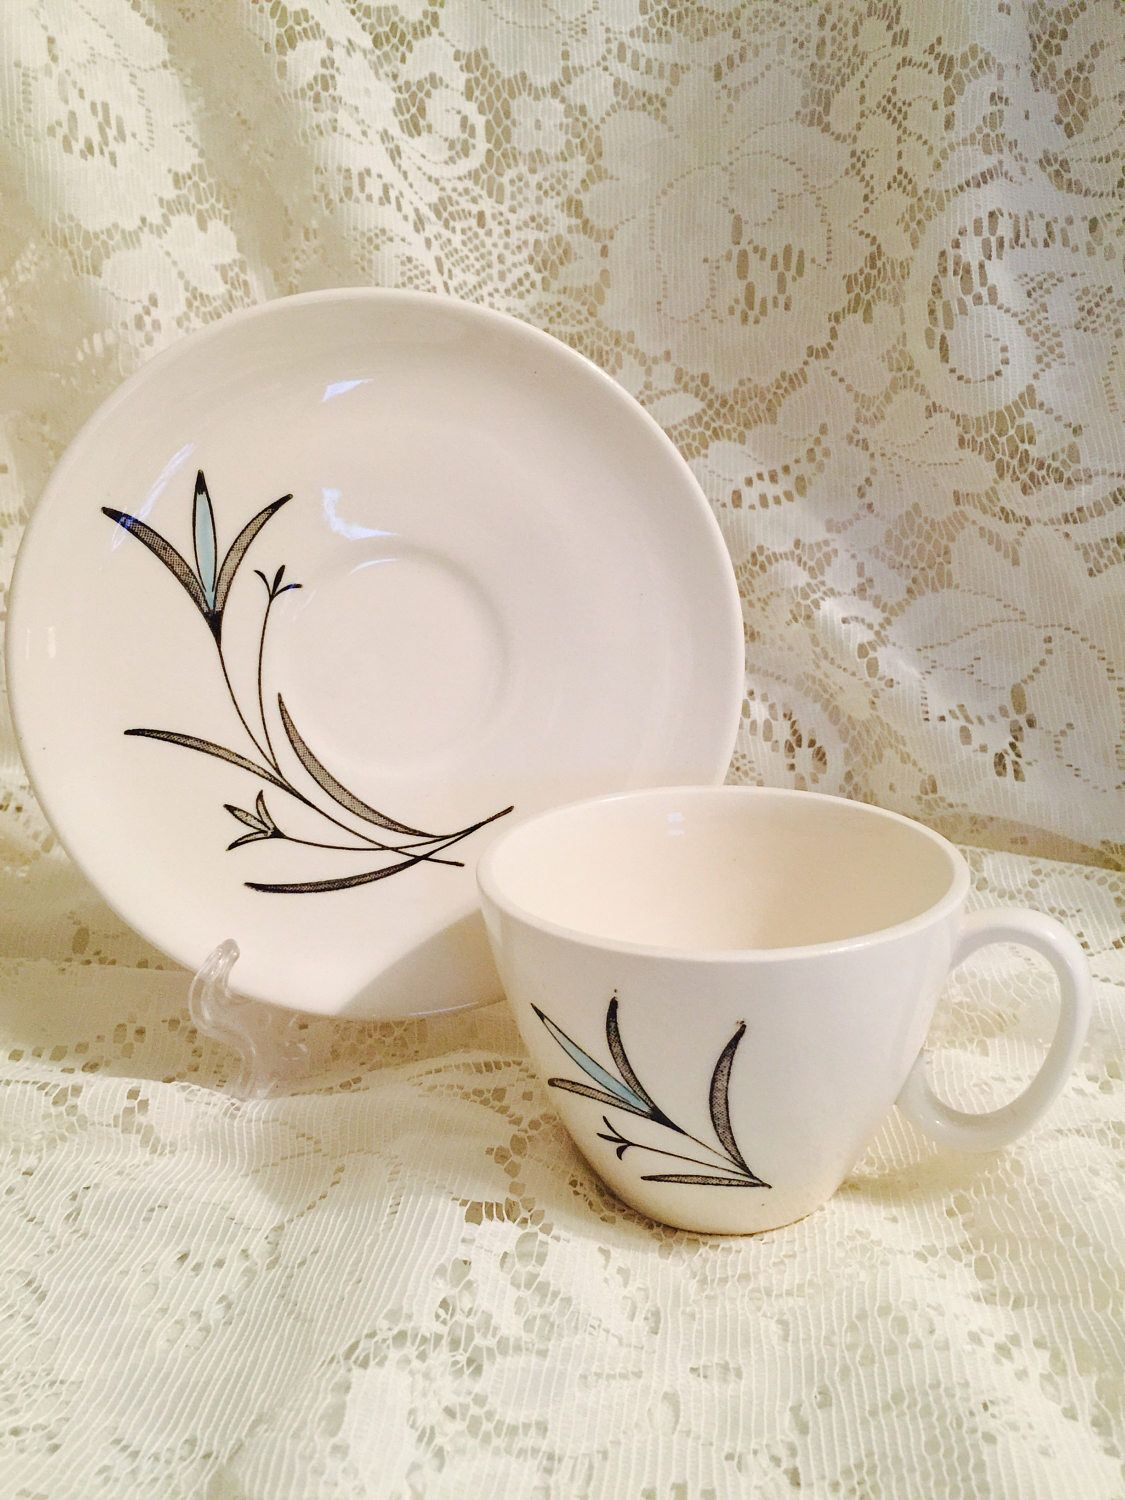 12 Royal China Inc. Teacup and Saucer Sets In Ballet - Light Blue and Black on White - Party - Brunch - Bed And Breakfast - Coffee Tea #freereadingincsites